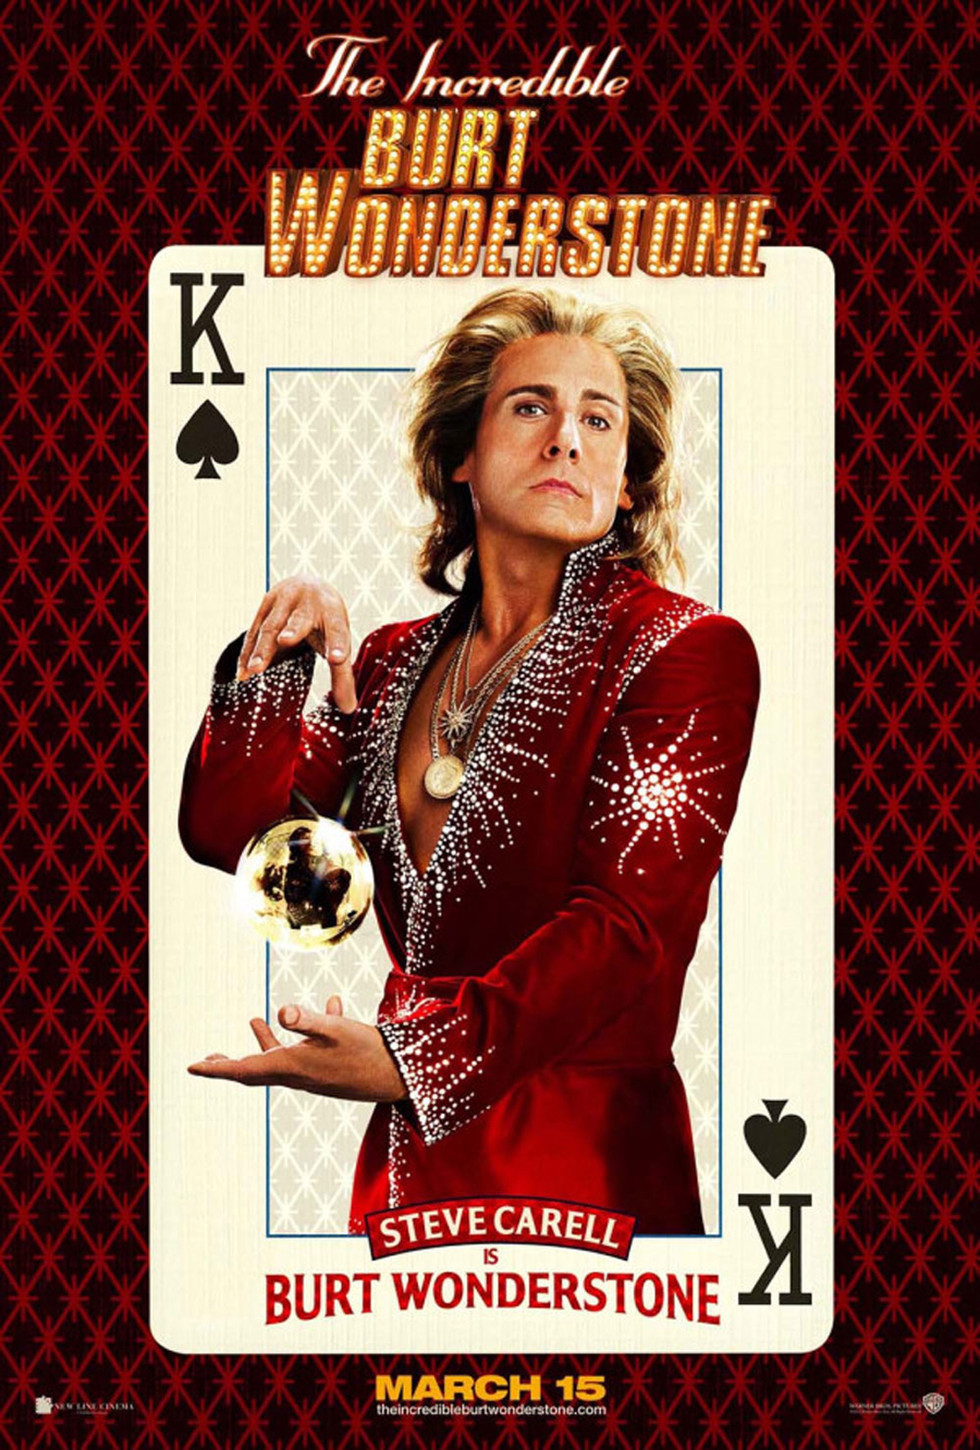 The Incredible Burt Wonderstone - Movie Poster #6 (Large)